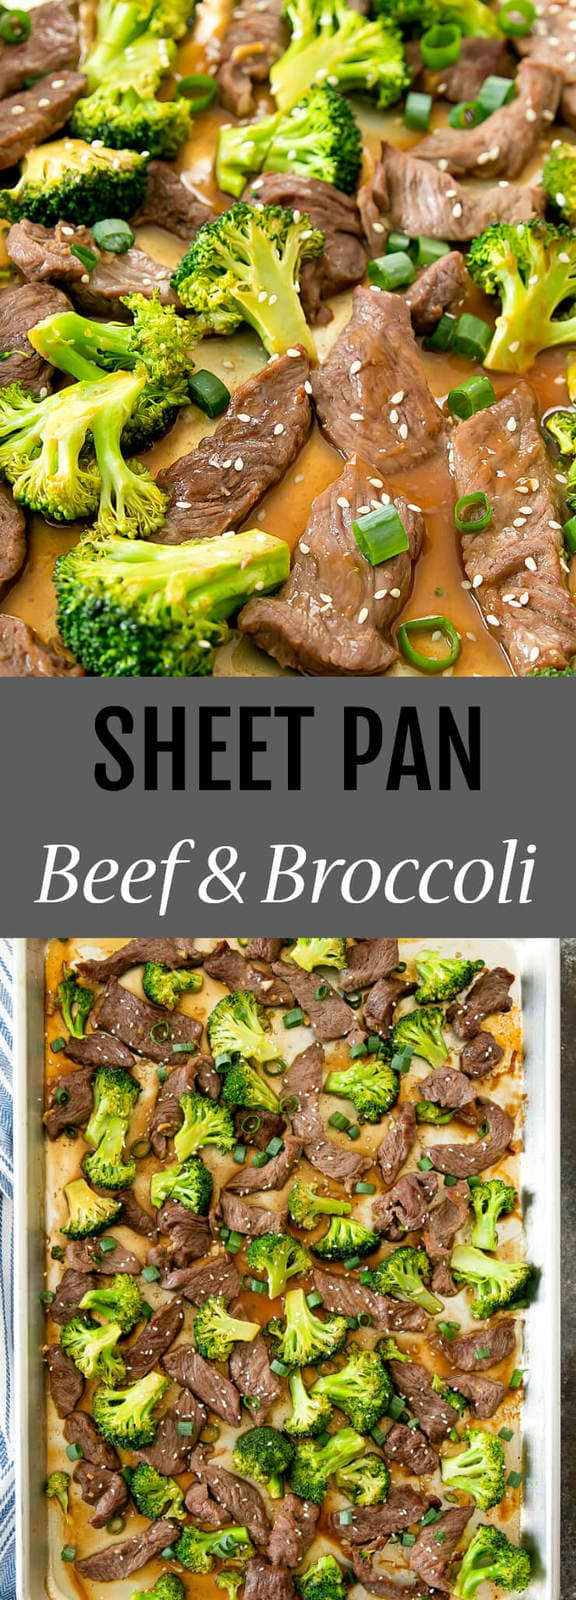 Sheet Pan Beef and Broccoli. This popular Chinese dish cooks on one sheet pan and is ready in less than 30 minutes for an easy meal.